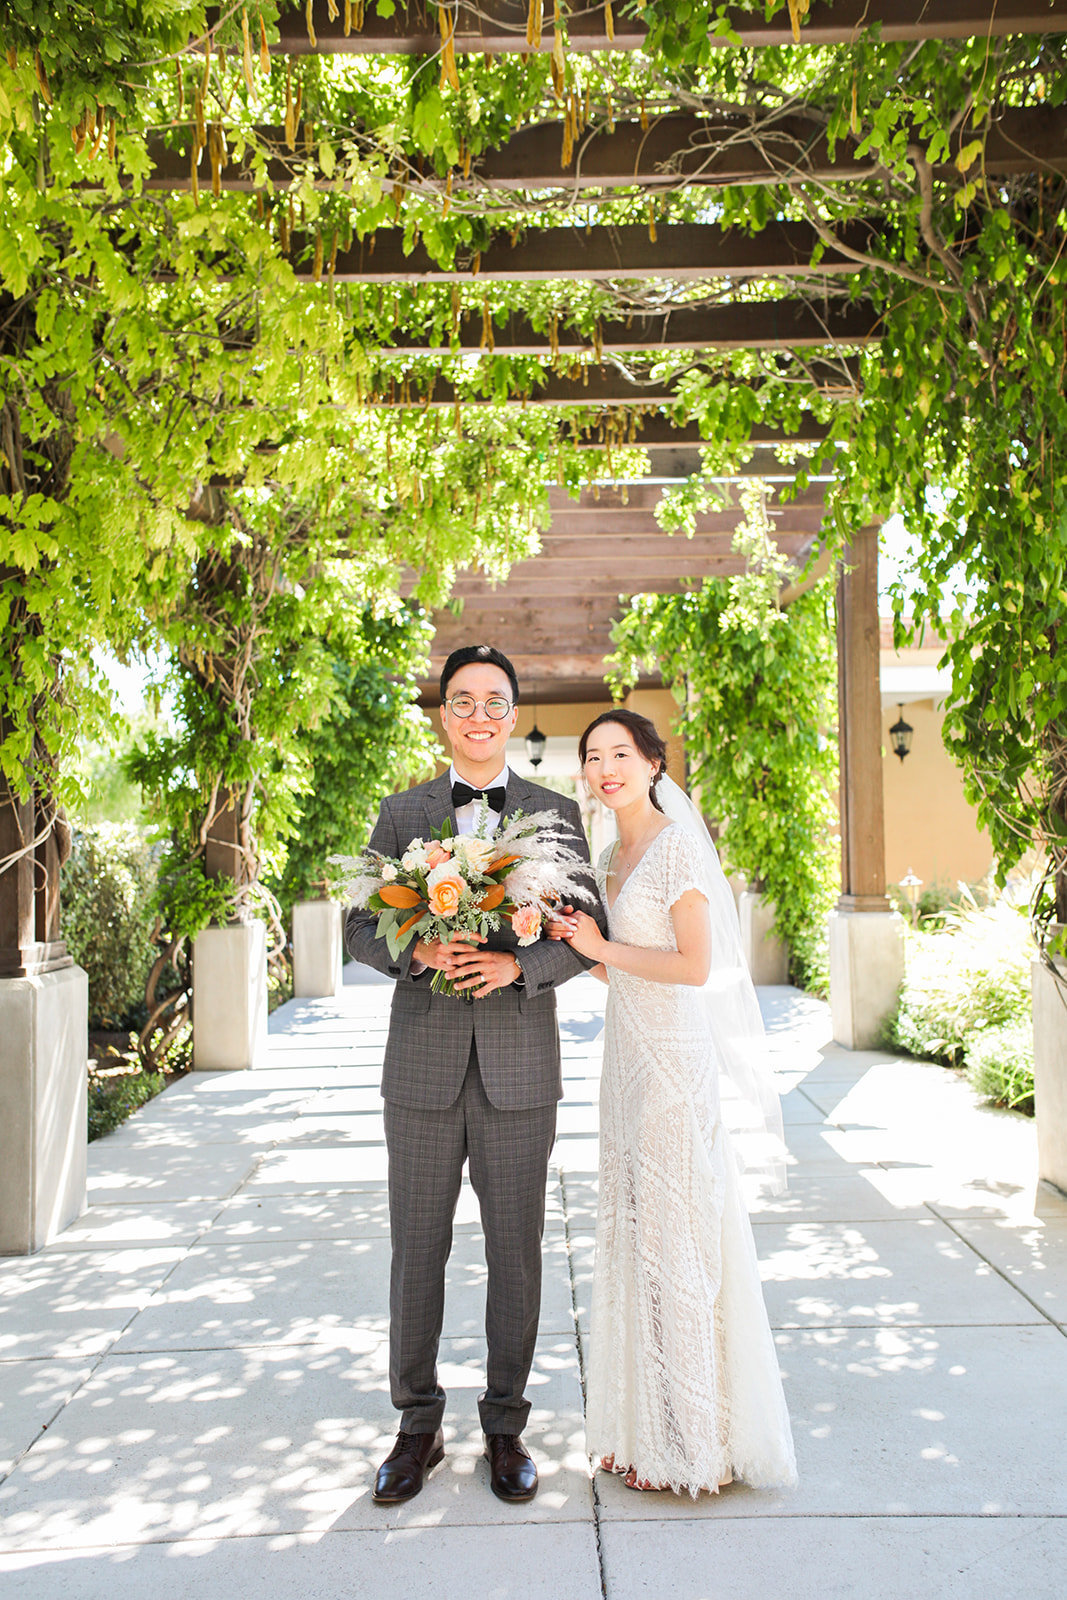 Albuquerque Wedding Photographer_Hotel Albuquerque_www.tylerbrooke.com_Kate Kauffman_056